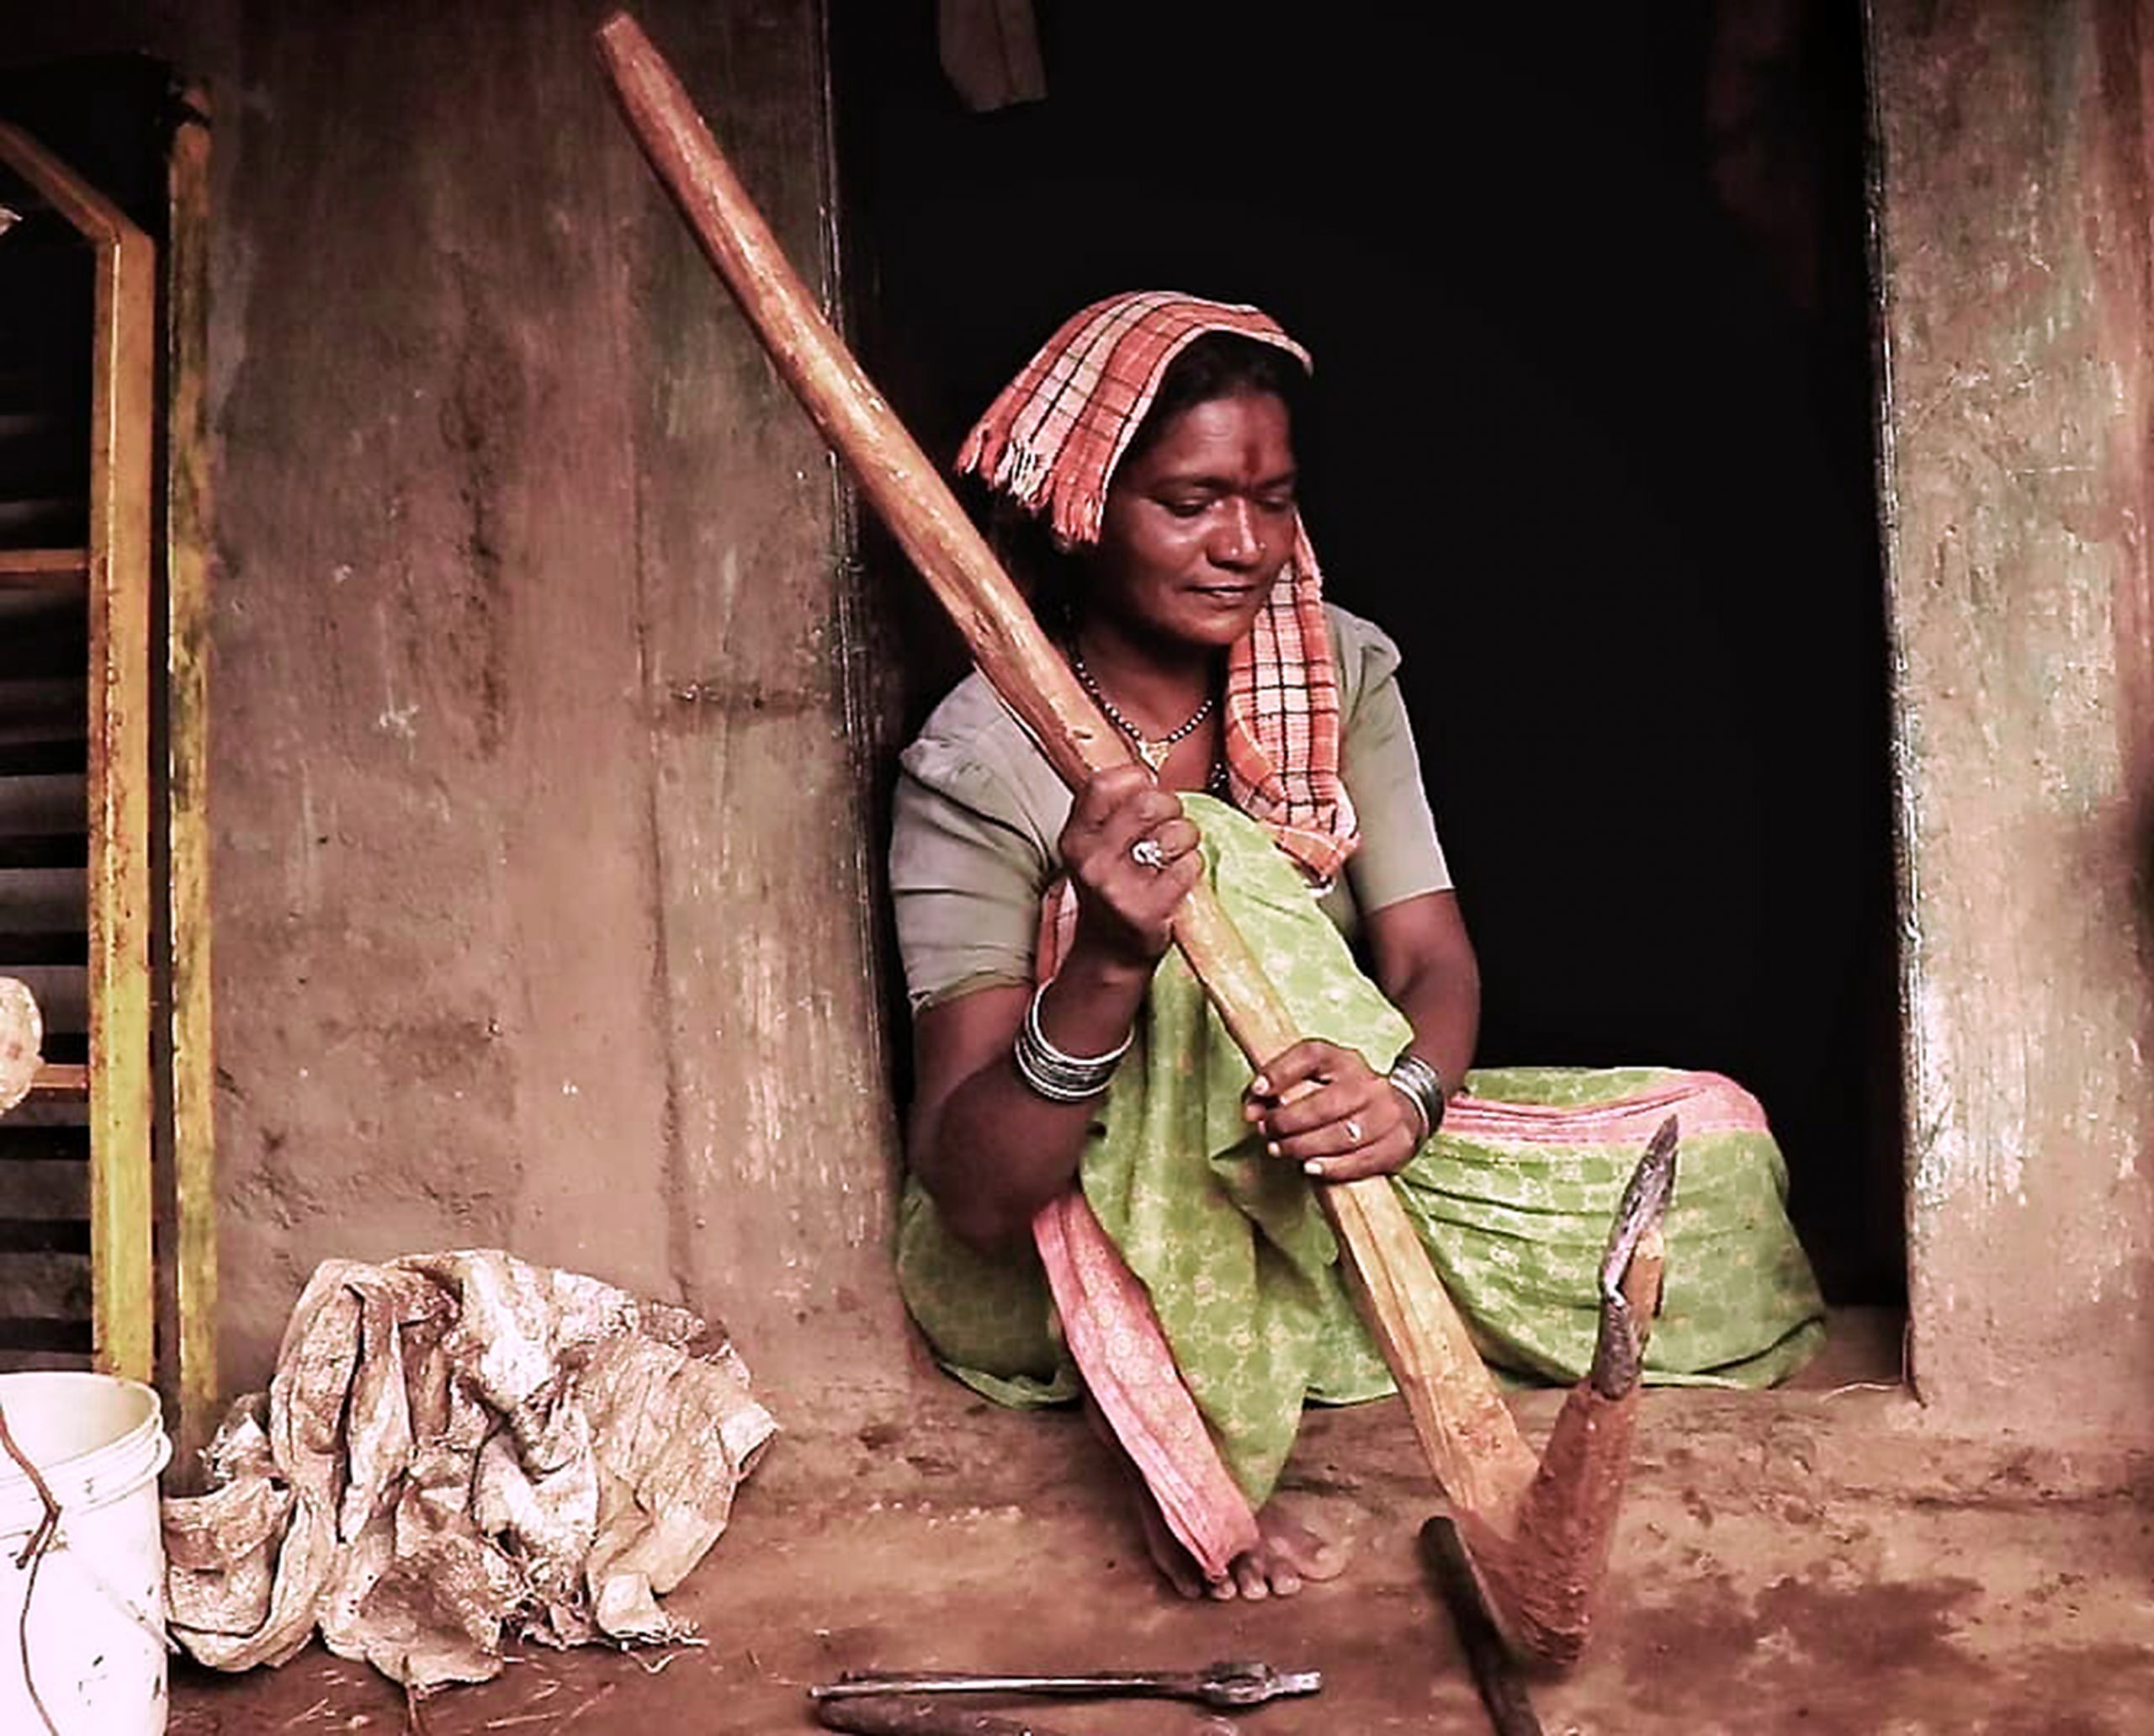 Lifestyle of Rural India